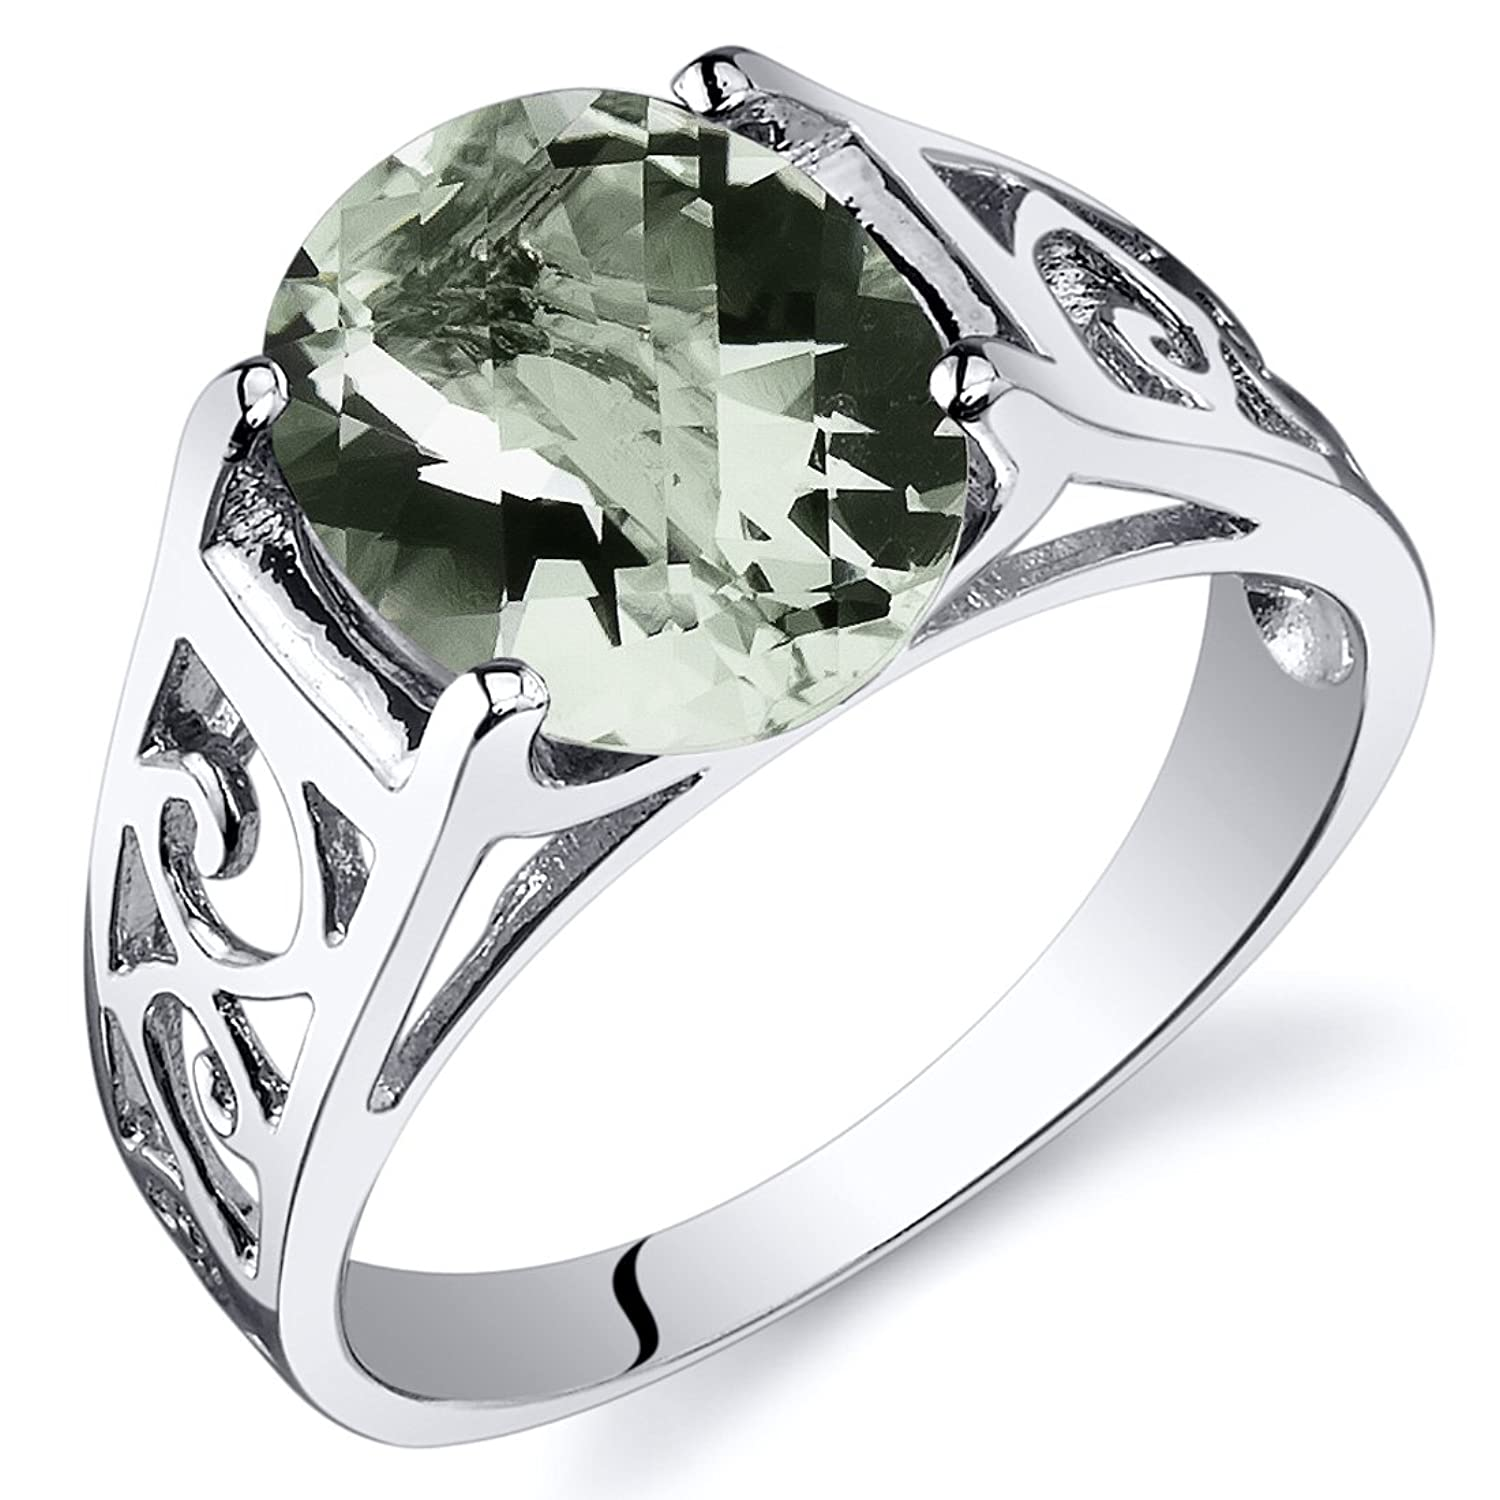 Green Amethyst Solitaire Ring Sterling Silver Rhodium Nickel Finish Oval Cut 2.25 Carats Sizes 5 to 9